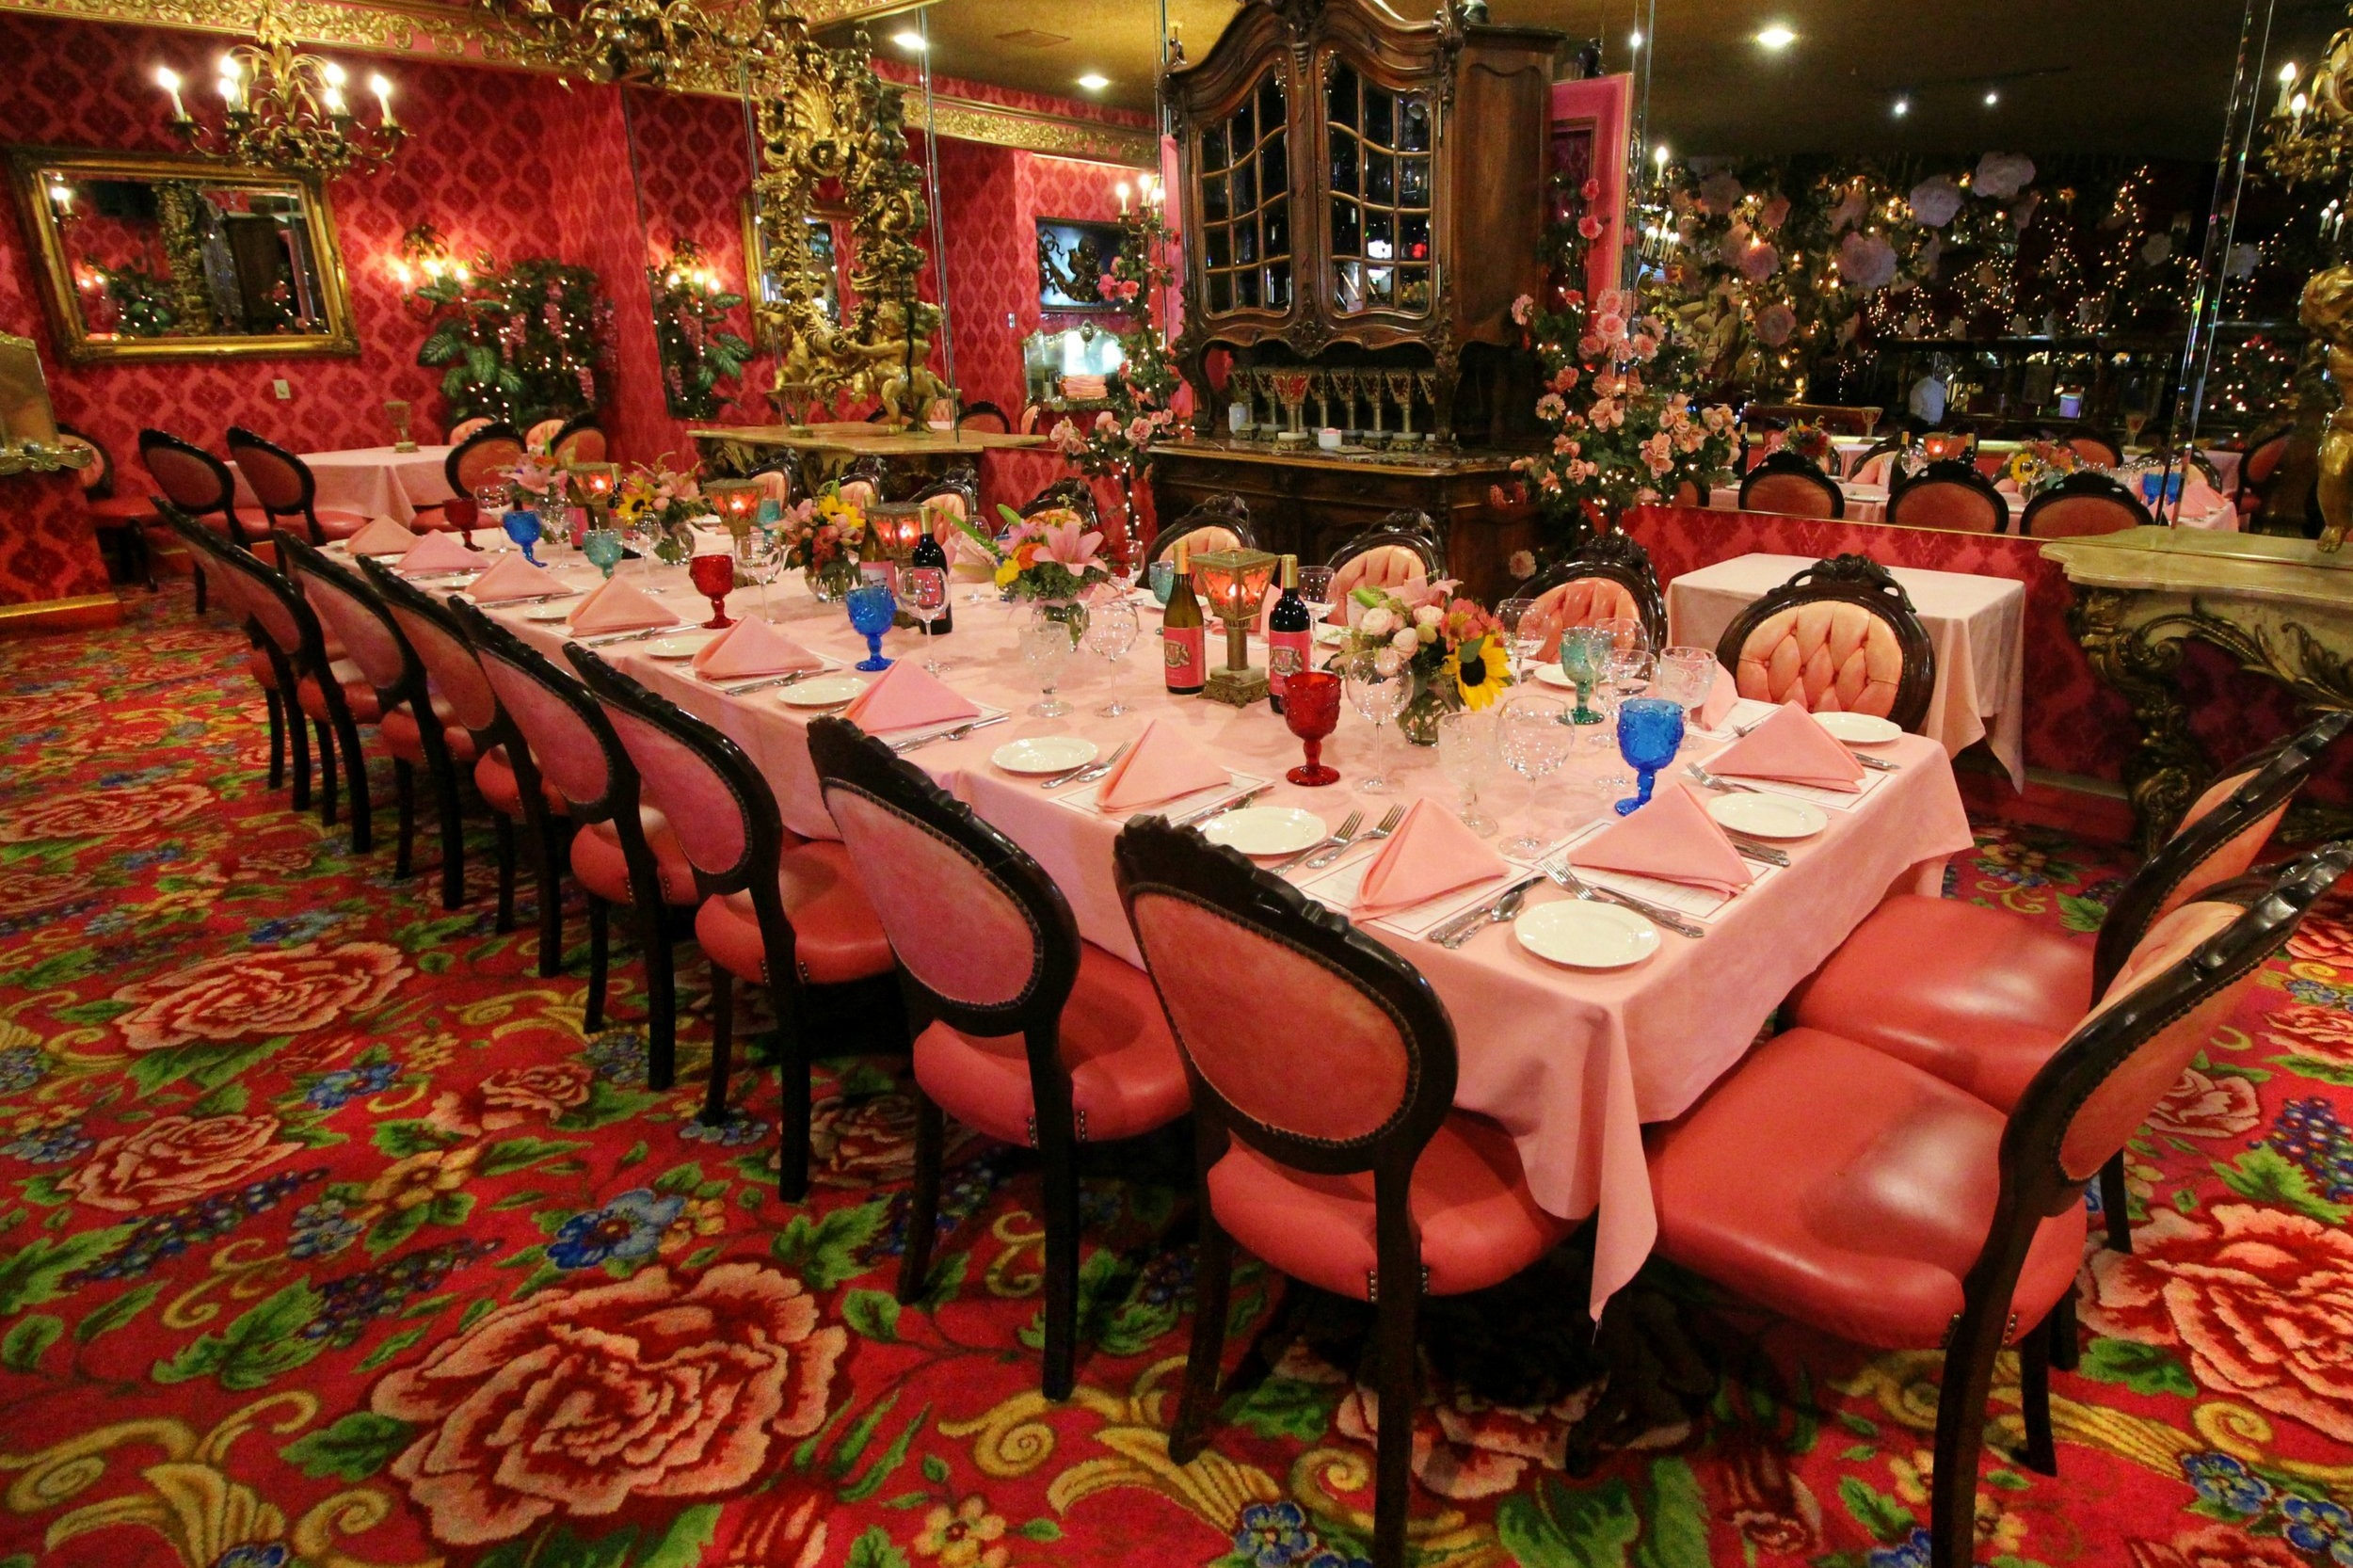 Banquets & Events - Let us help plan your next corporate event, celebration, birthday bash or holiday gathering.Banquet Office HoursMonday - Saturday | 9:00 a.m. to 5:00 p.m.(805) 784-2410| banquets@madonnainn.com